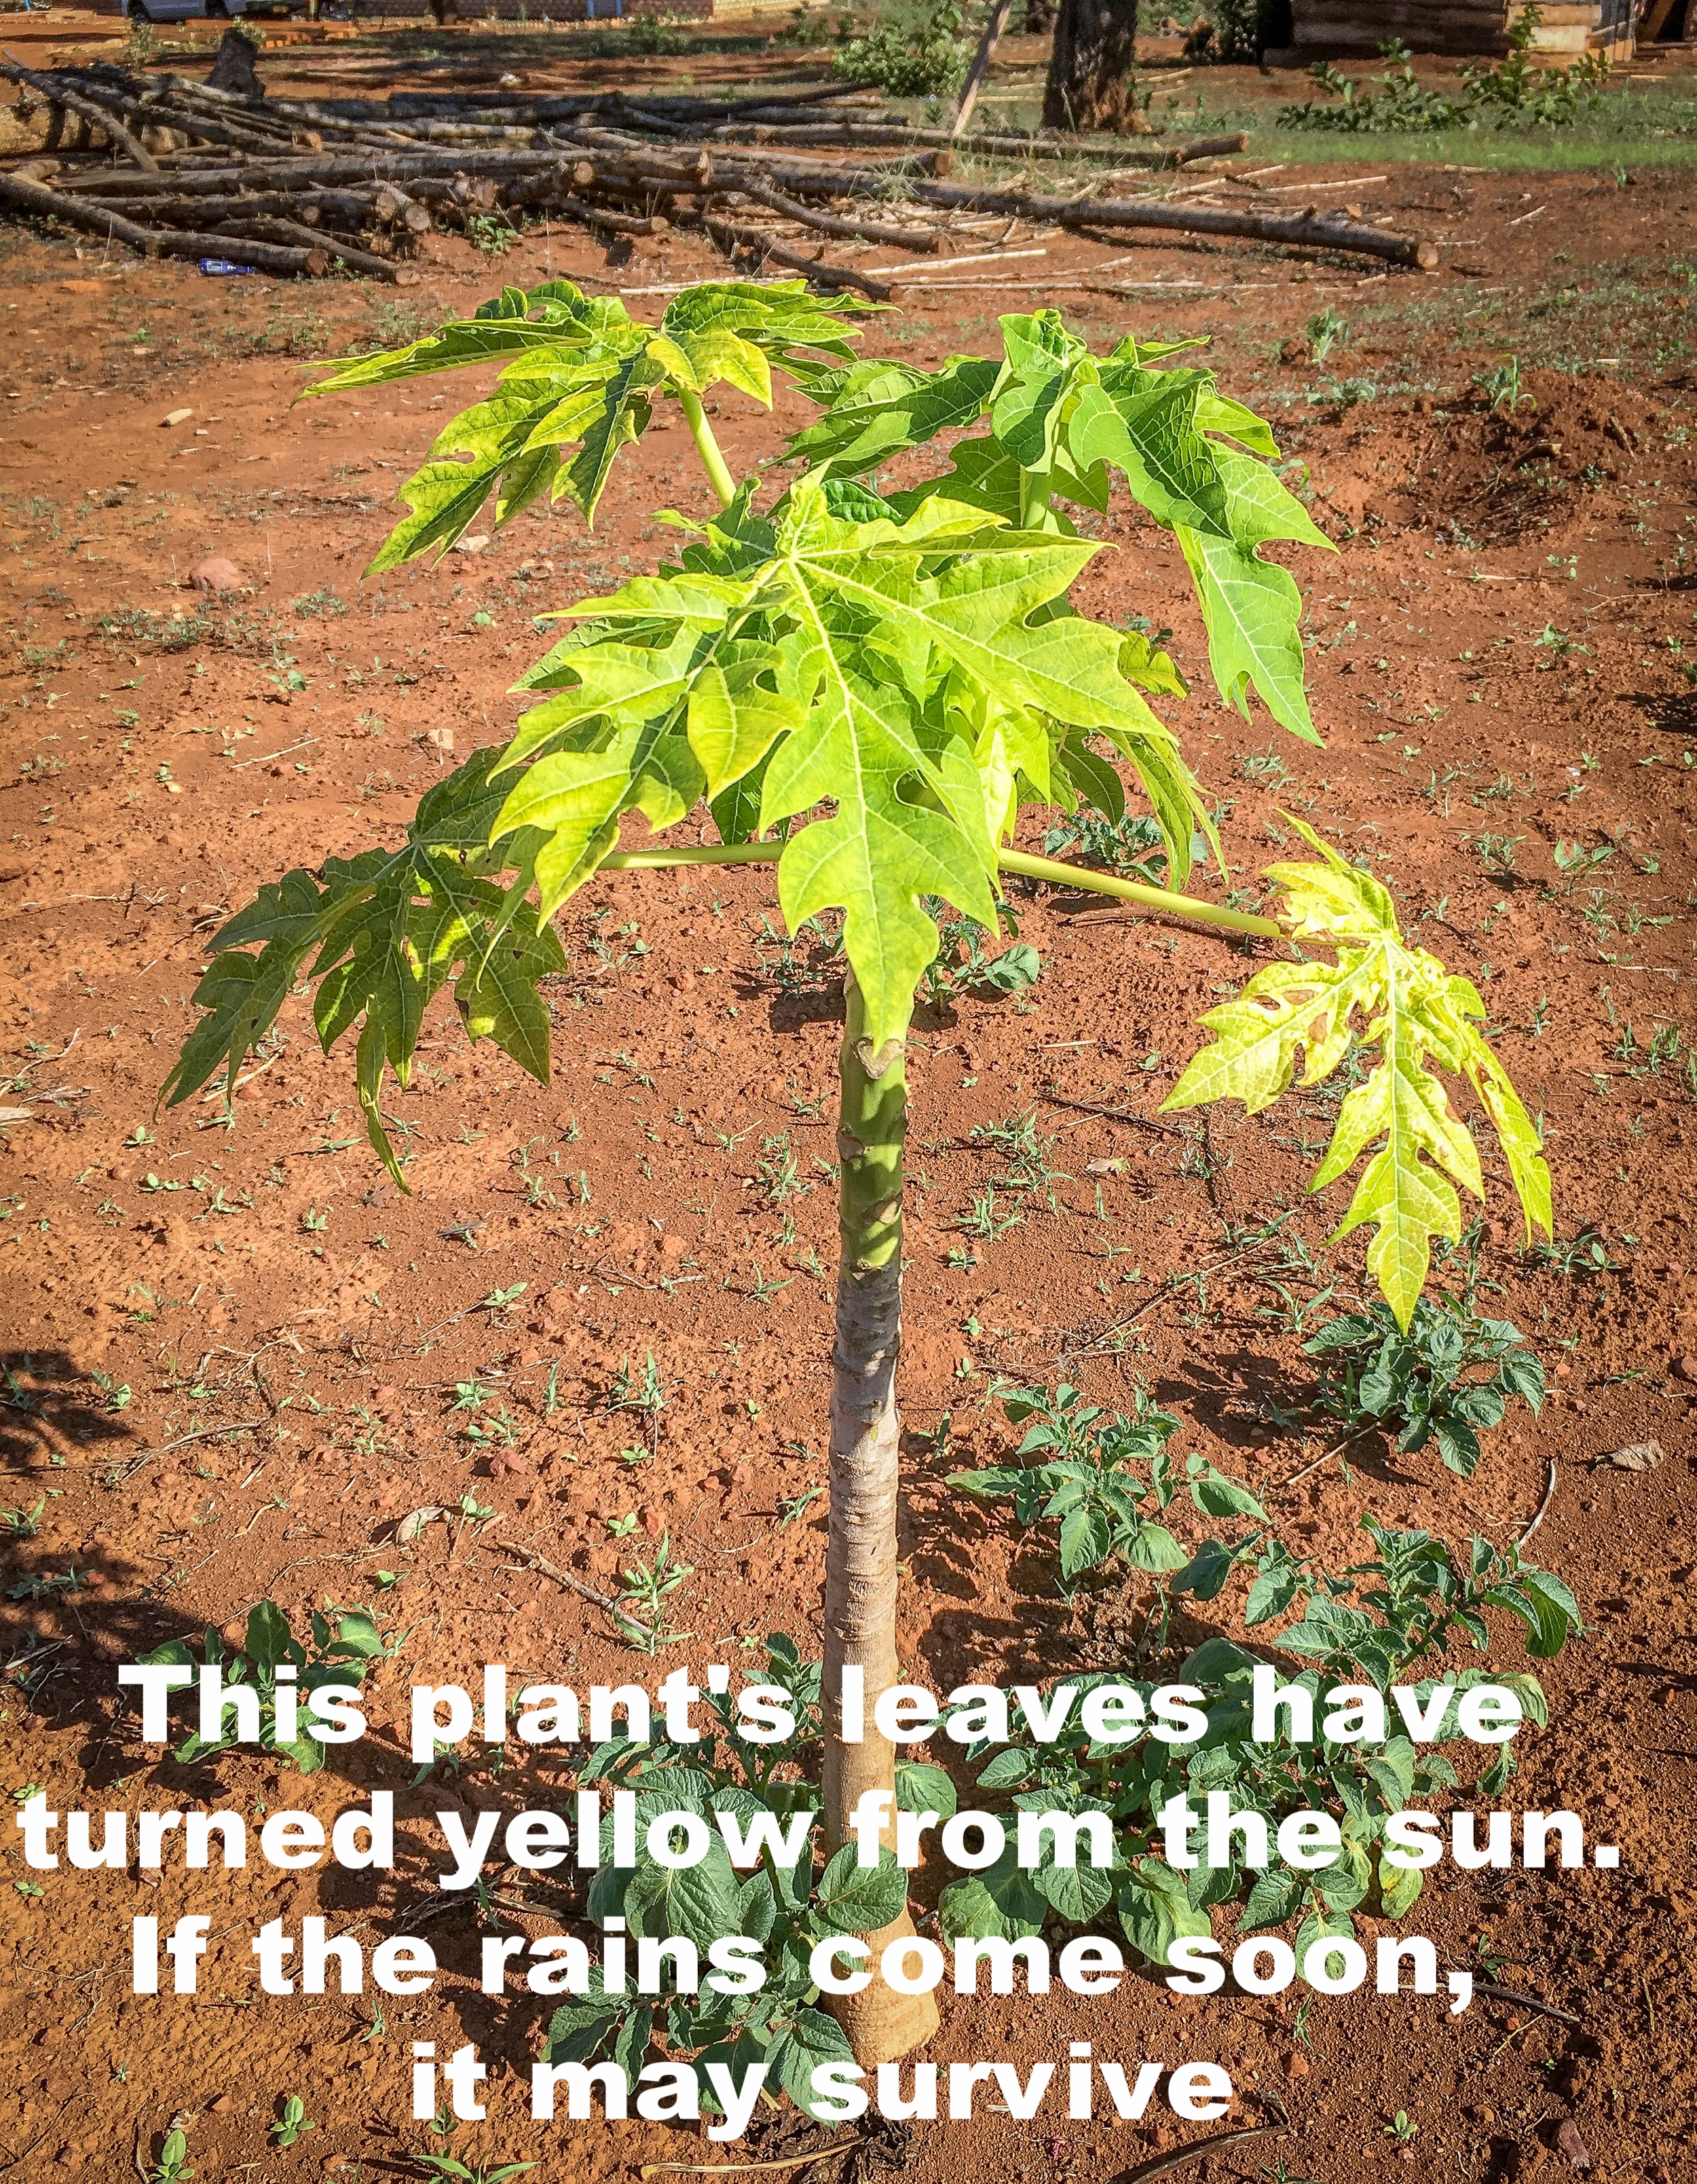 This has turn yellow, may be if it rains this can survive.jpg